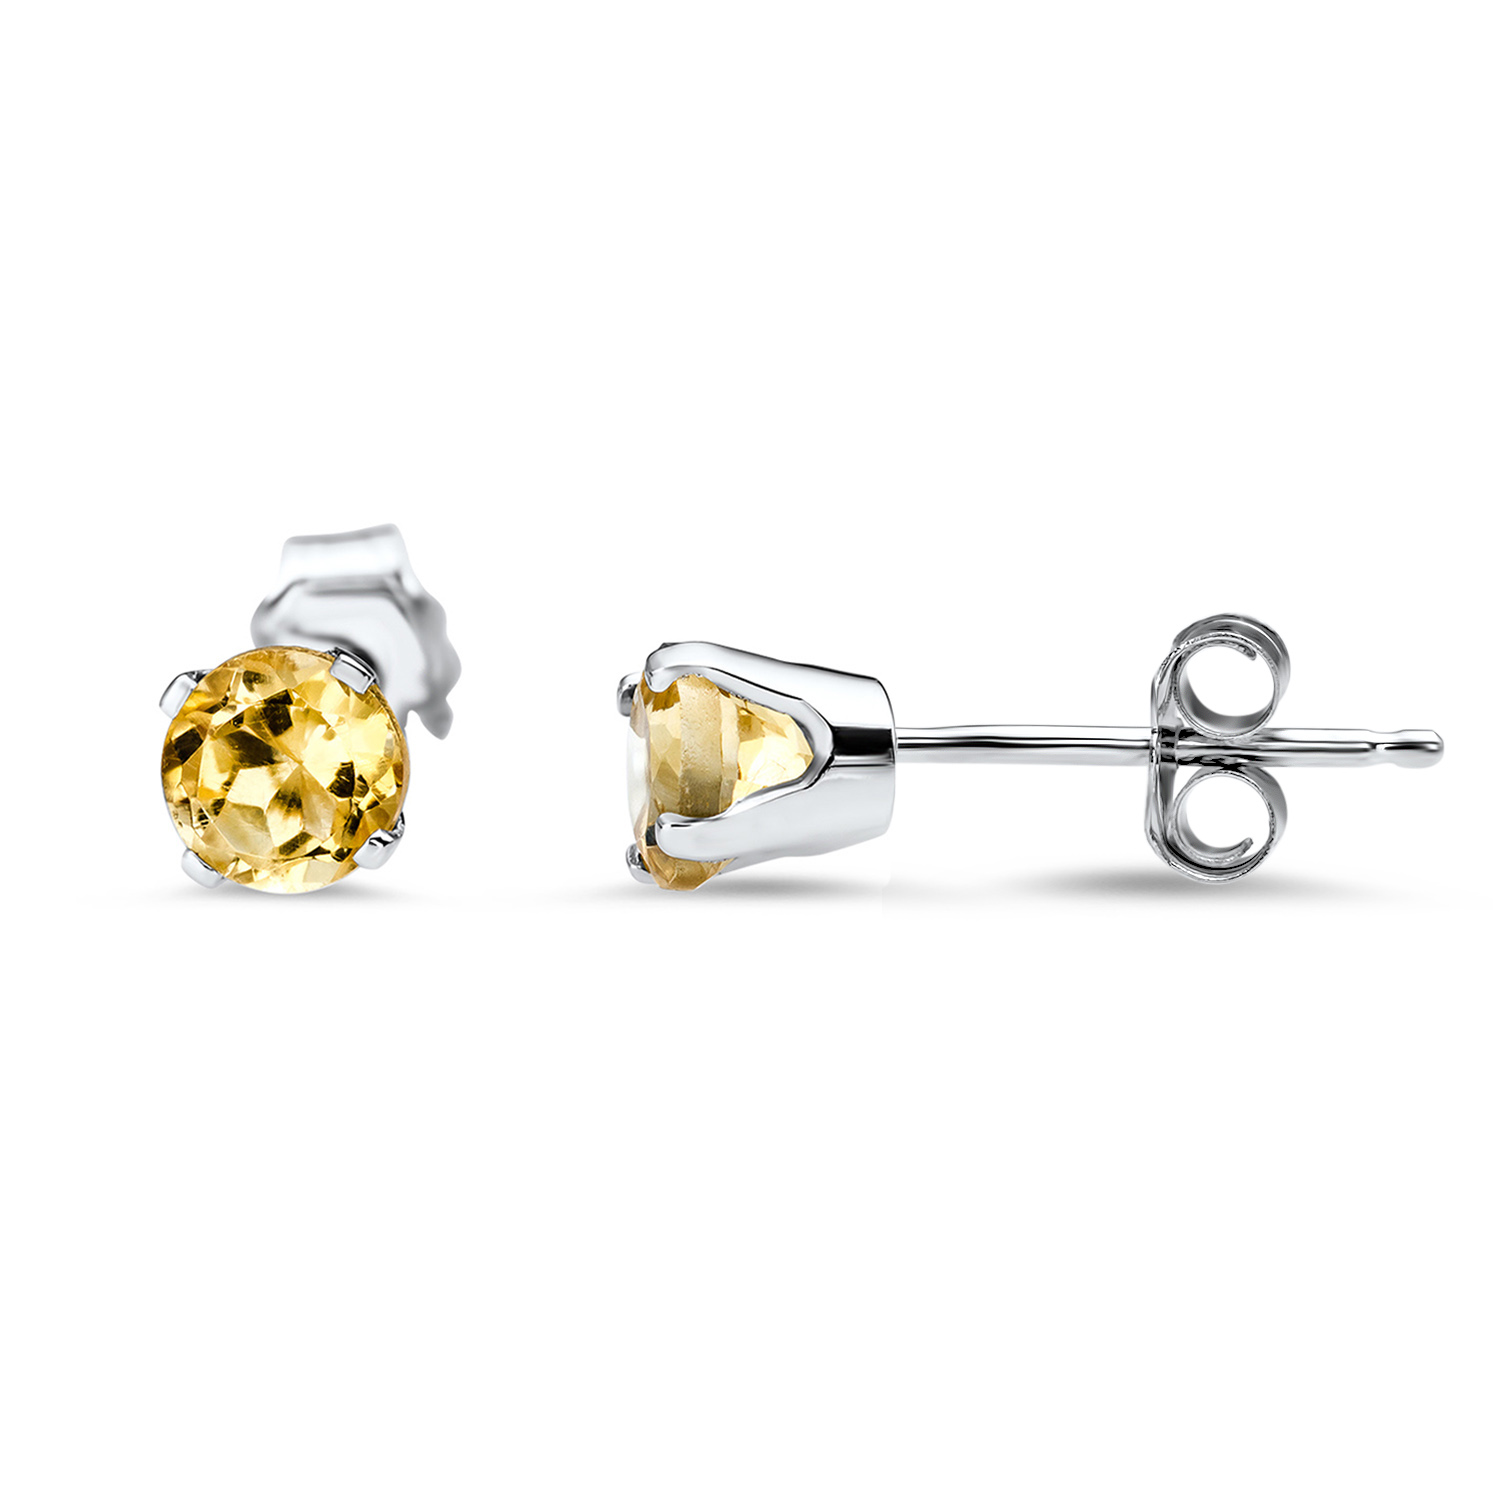 14k White Gold 4 mm Citrine Stud Earrings